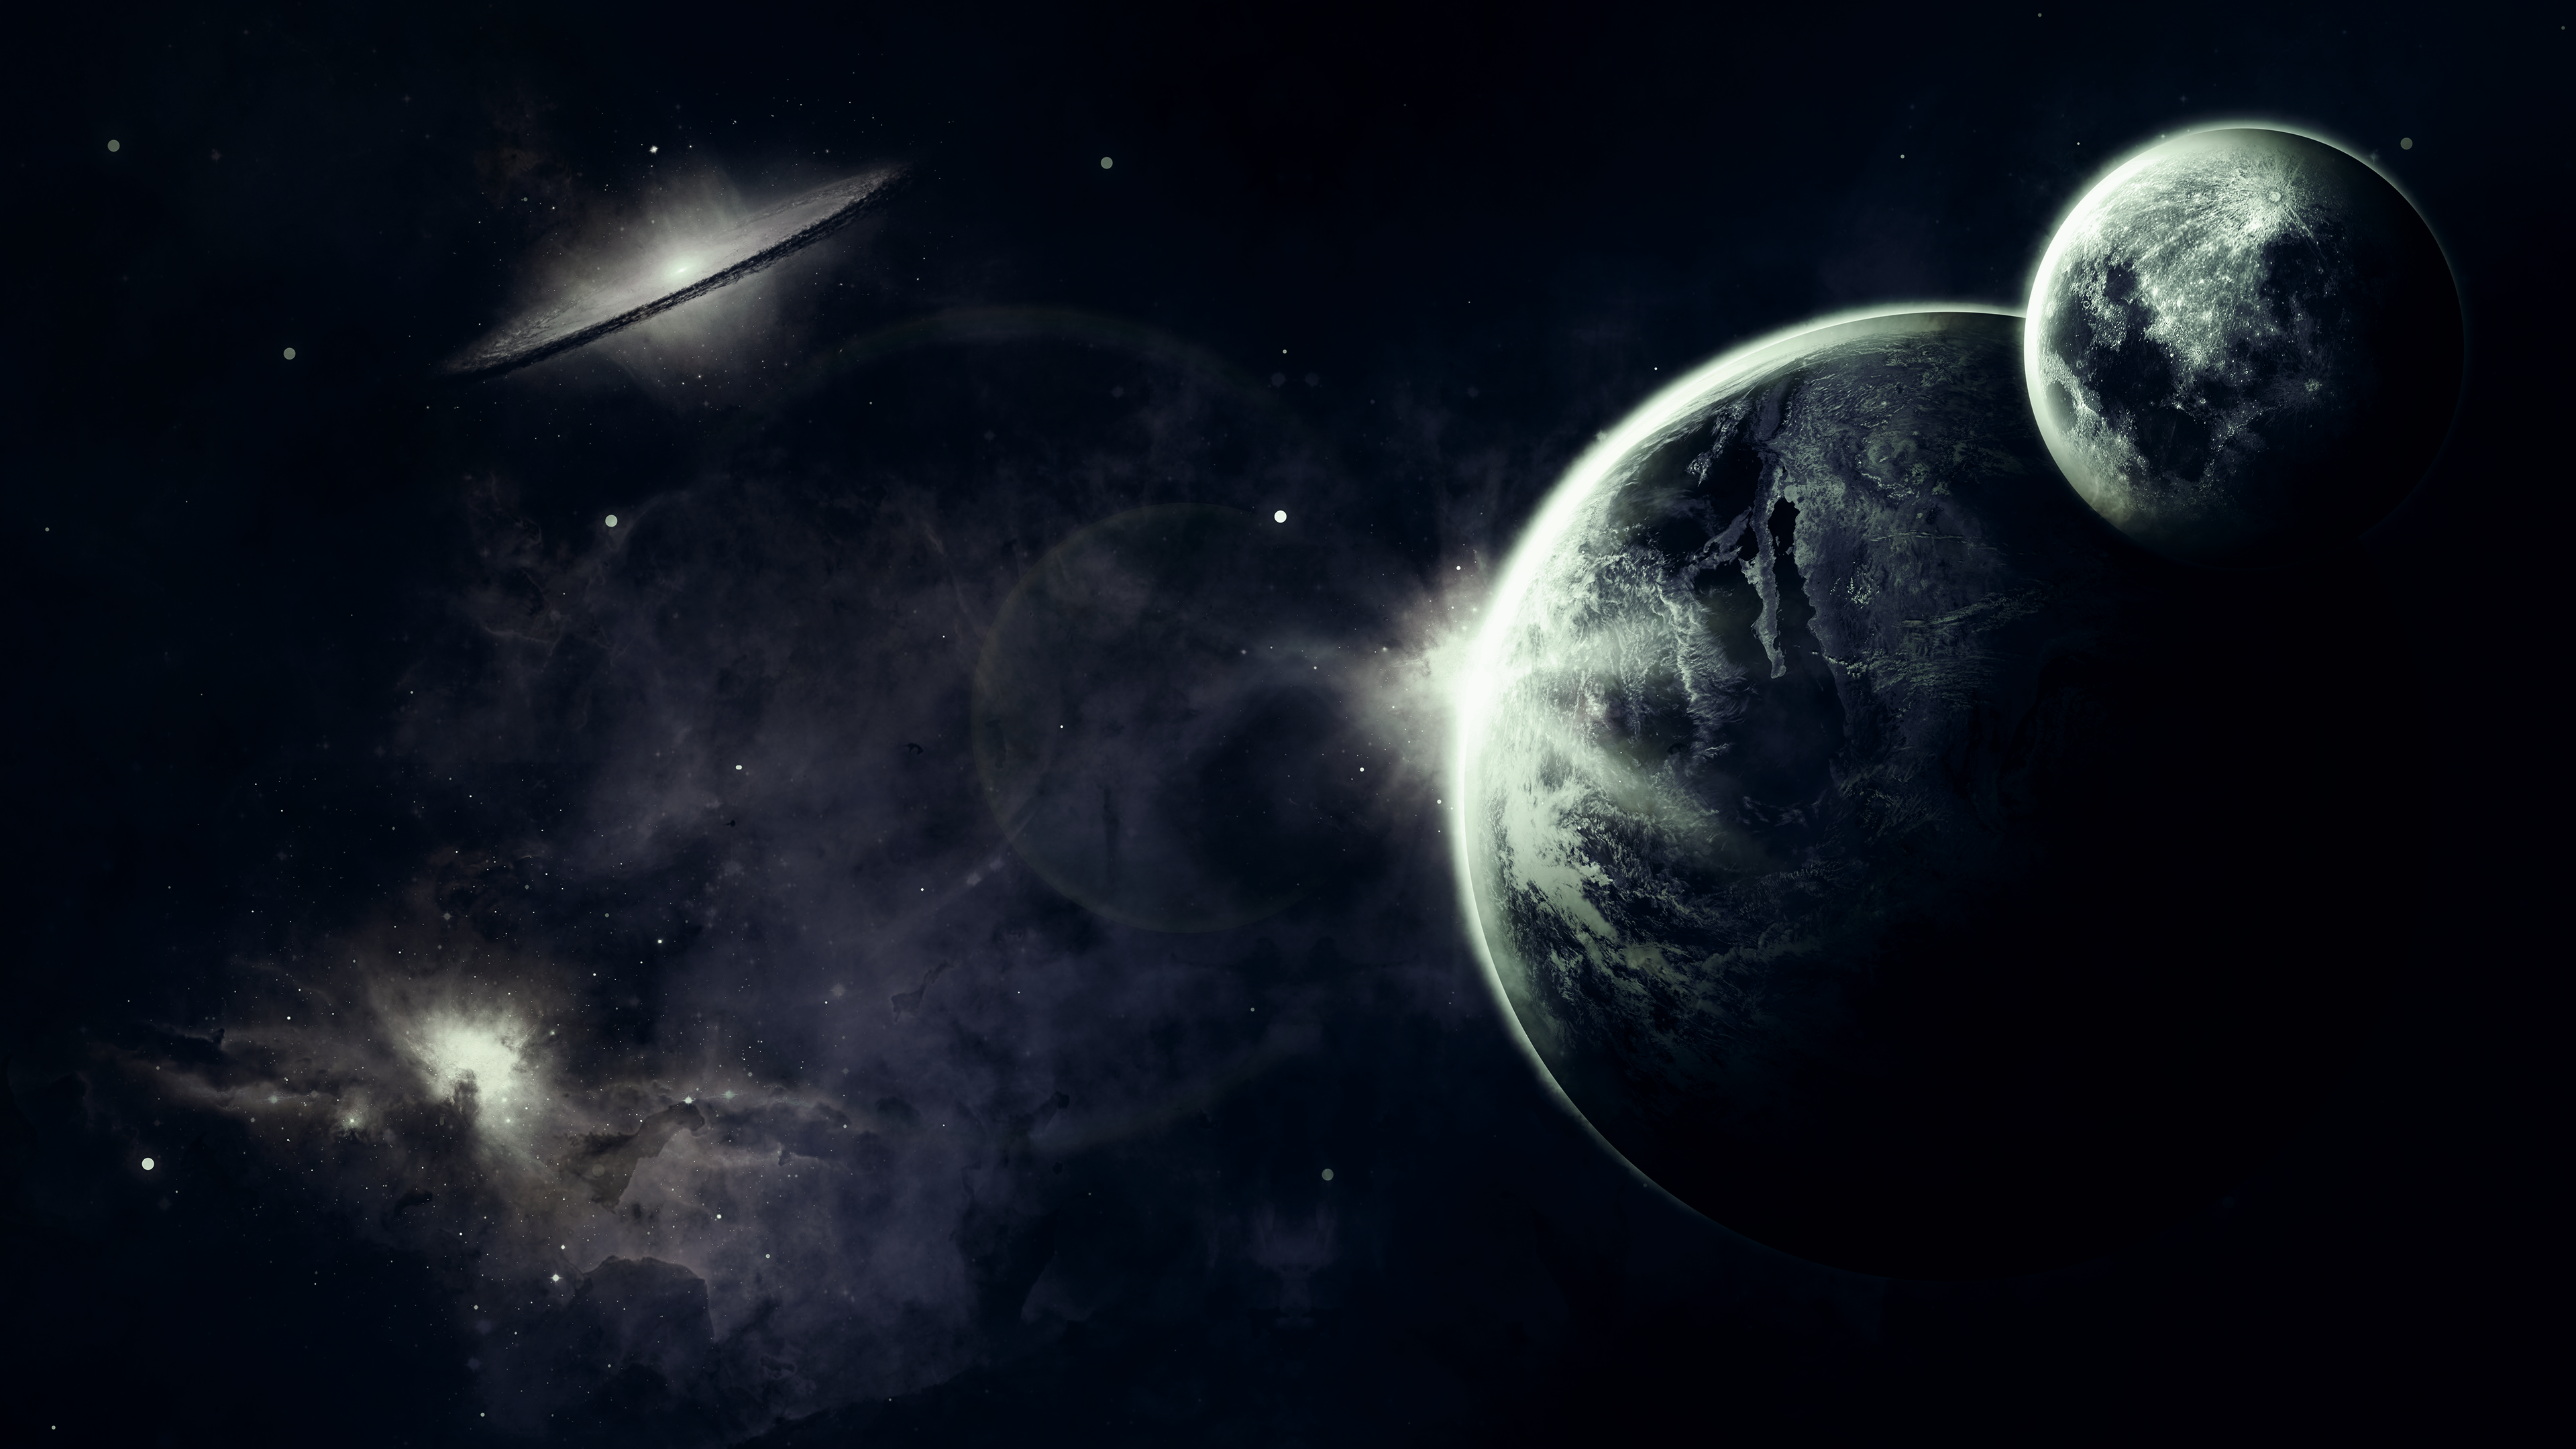 Download dark space laptop wallpaper in uhd 4k 0136 - Black space wallpaper ...